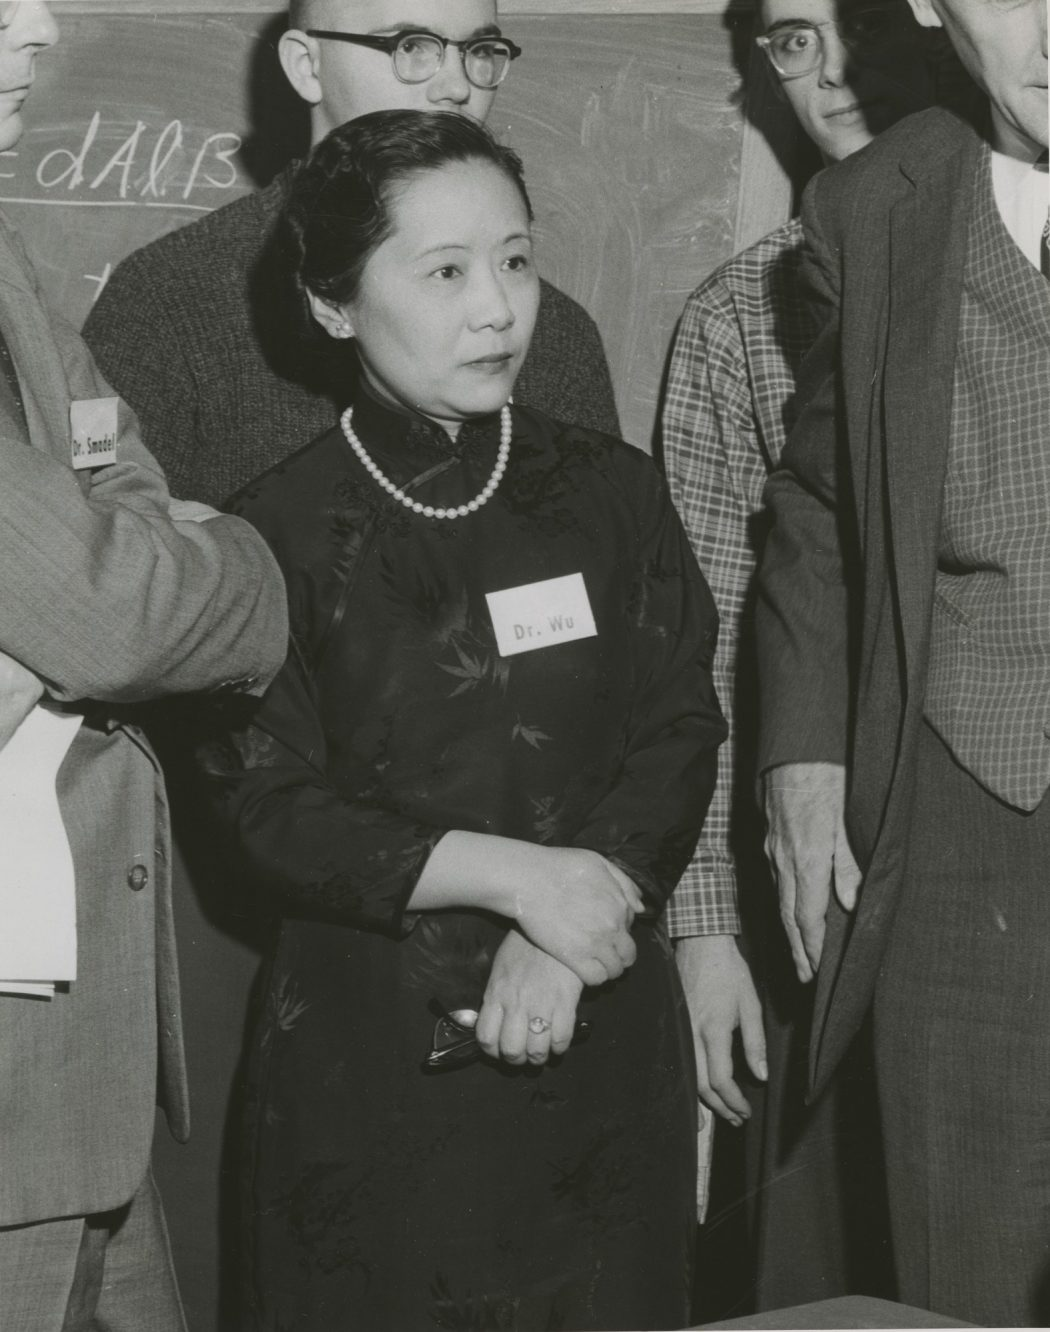 Chien-shiung_Wu_1912-1997_3 Top 10 Women Scientists You Should Know